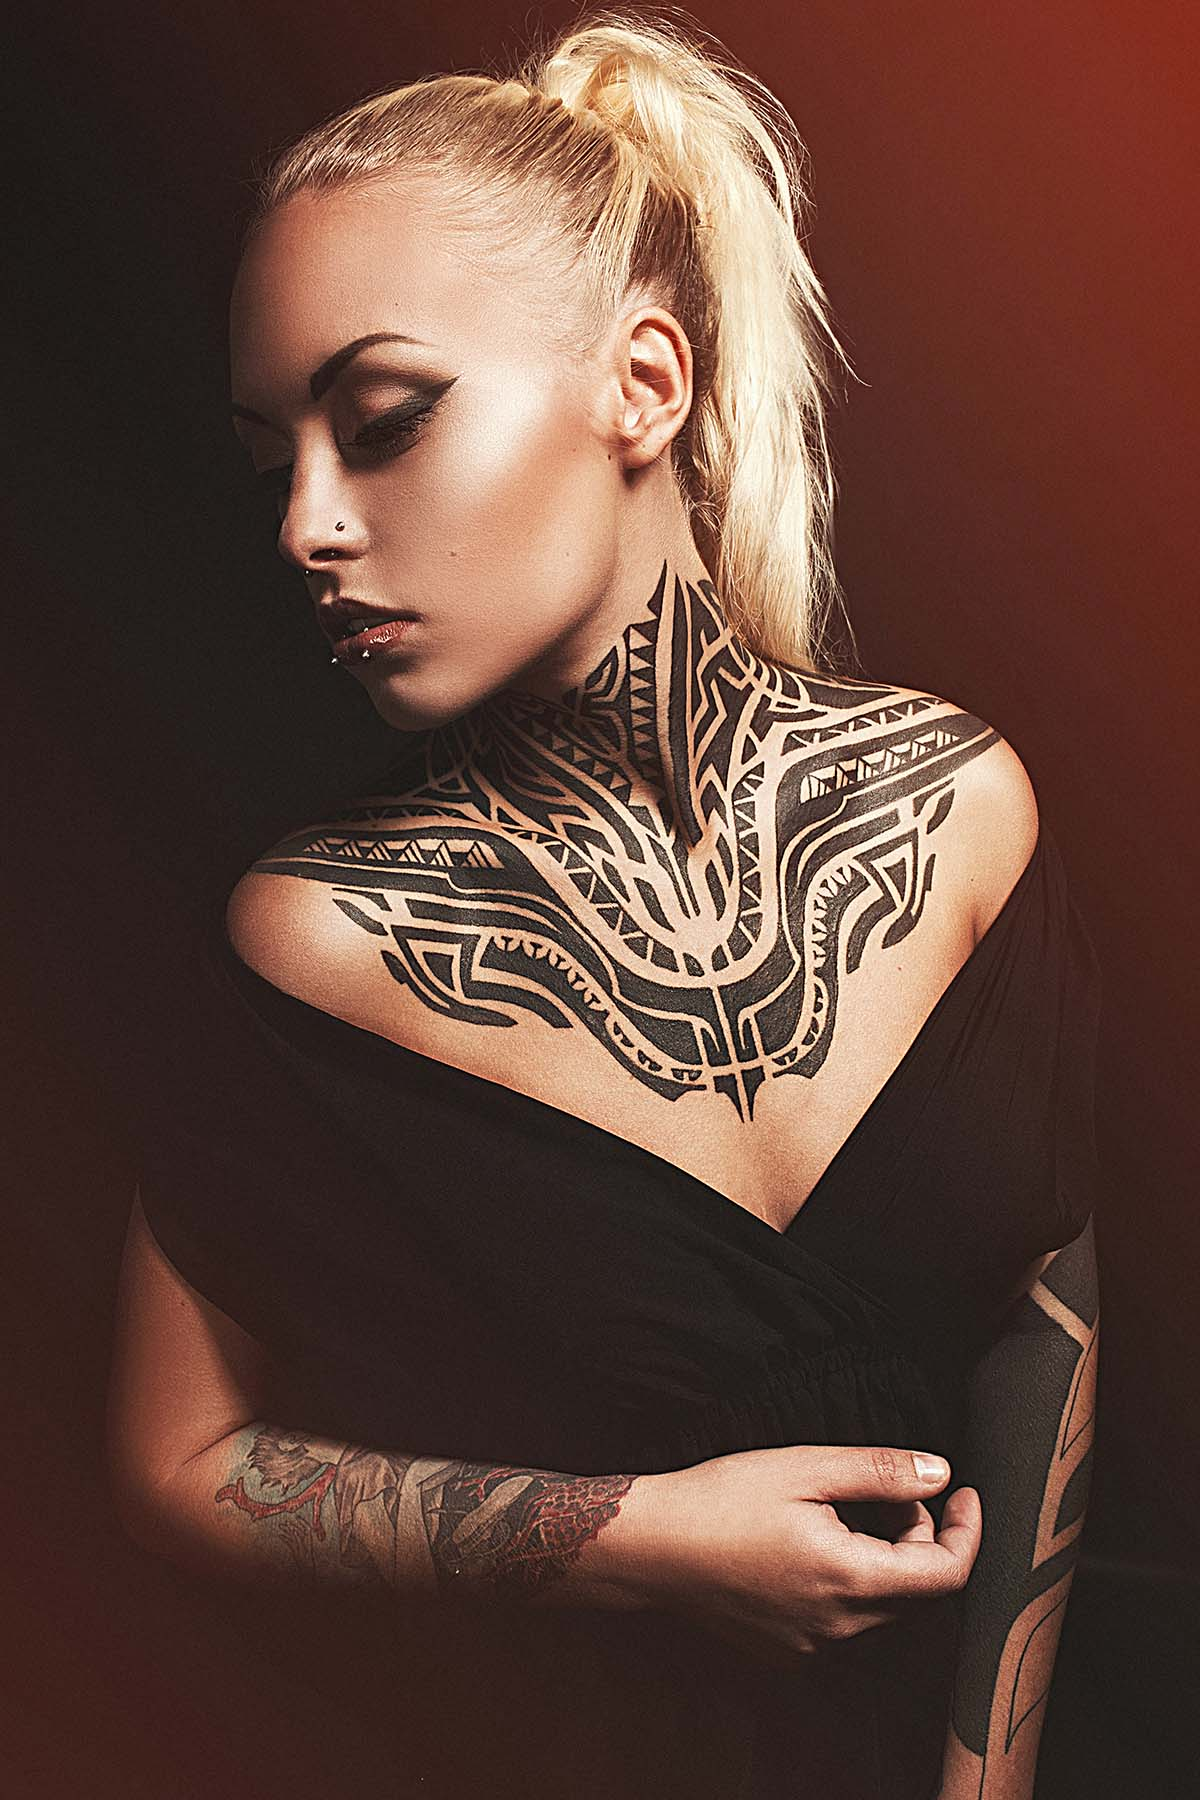 Female tattoos tumblr designs quotes on side of ribs on for Neck tattoos for females